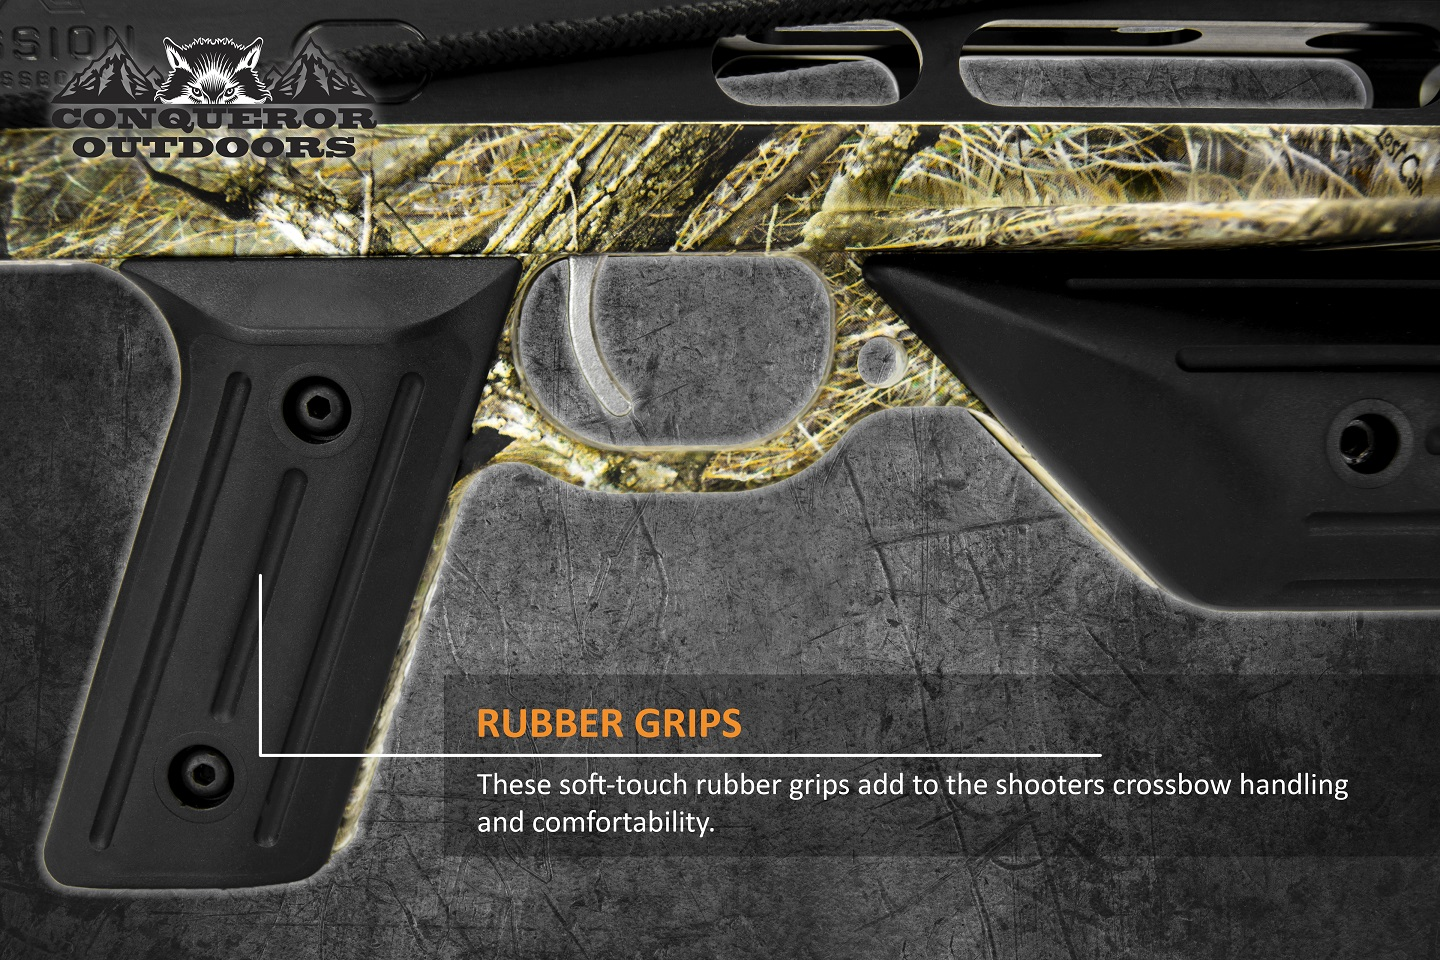 Mission Crossbow 400 Grip Detail with Text